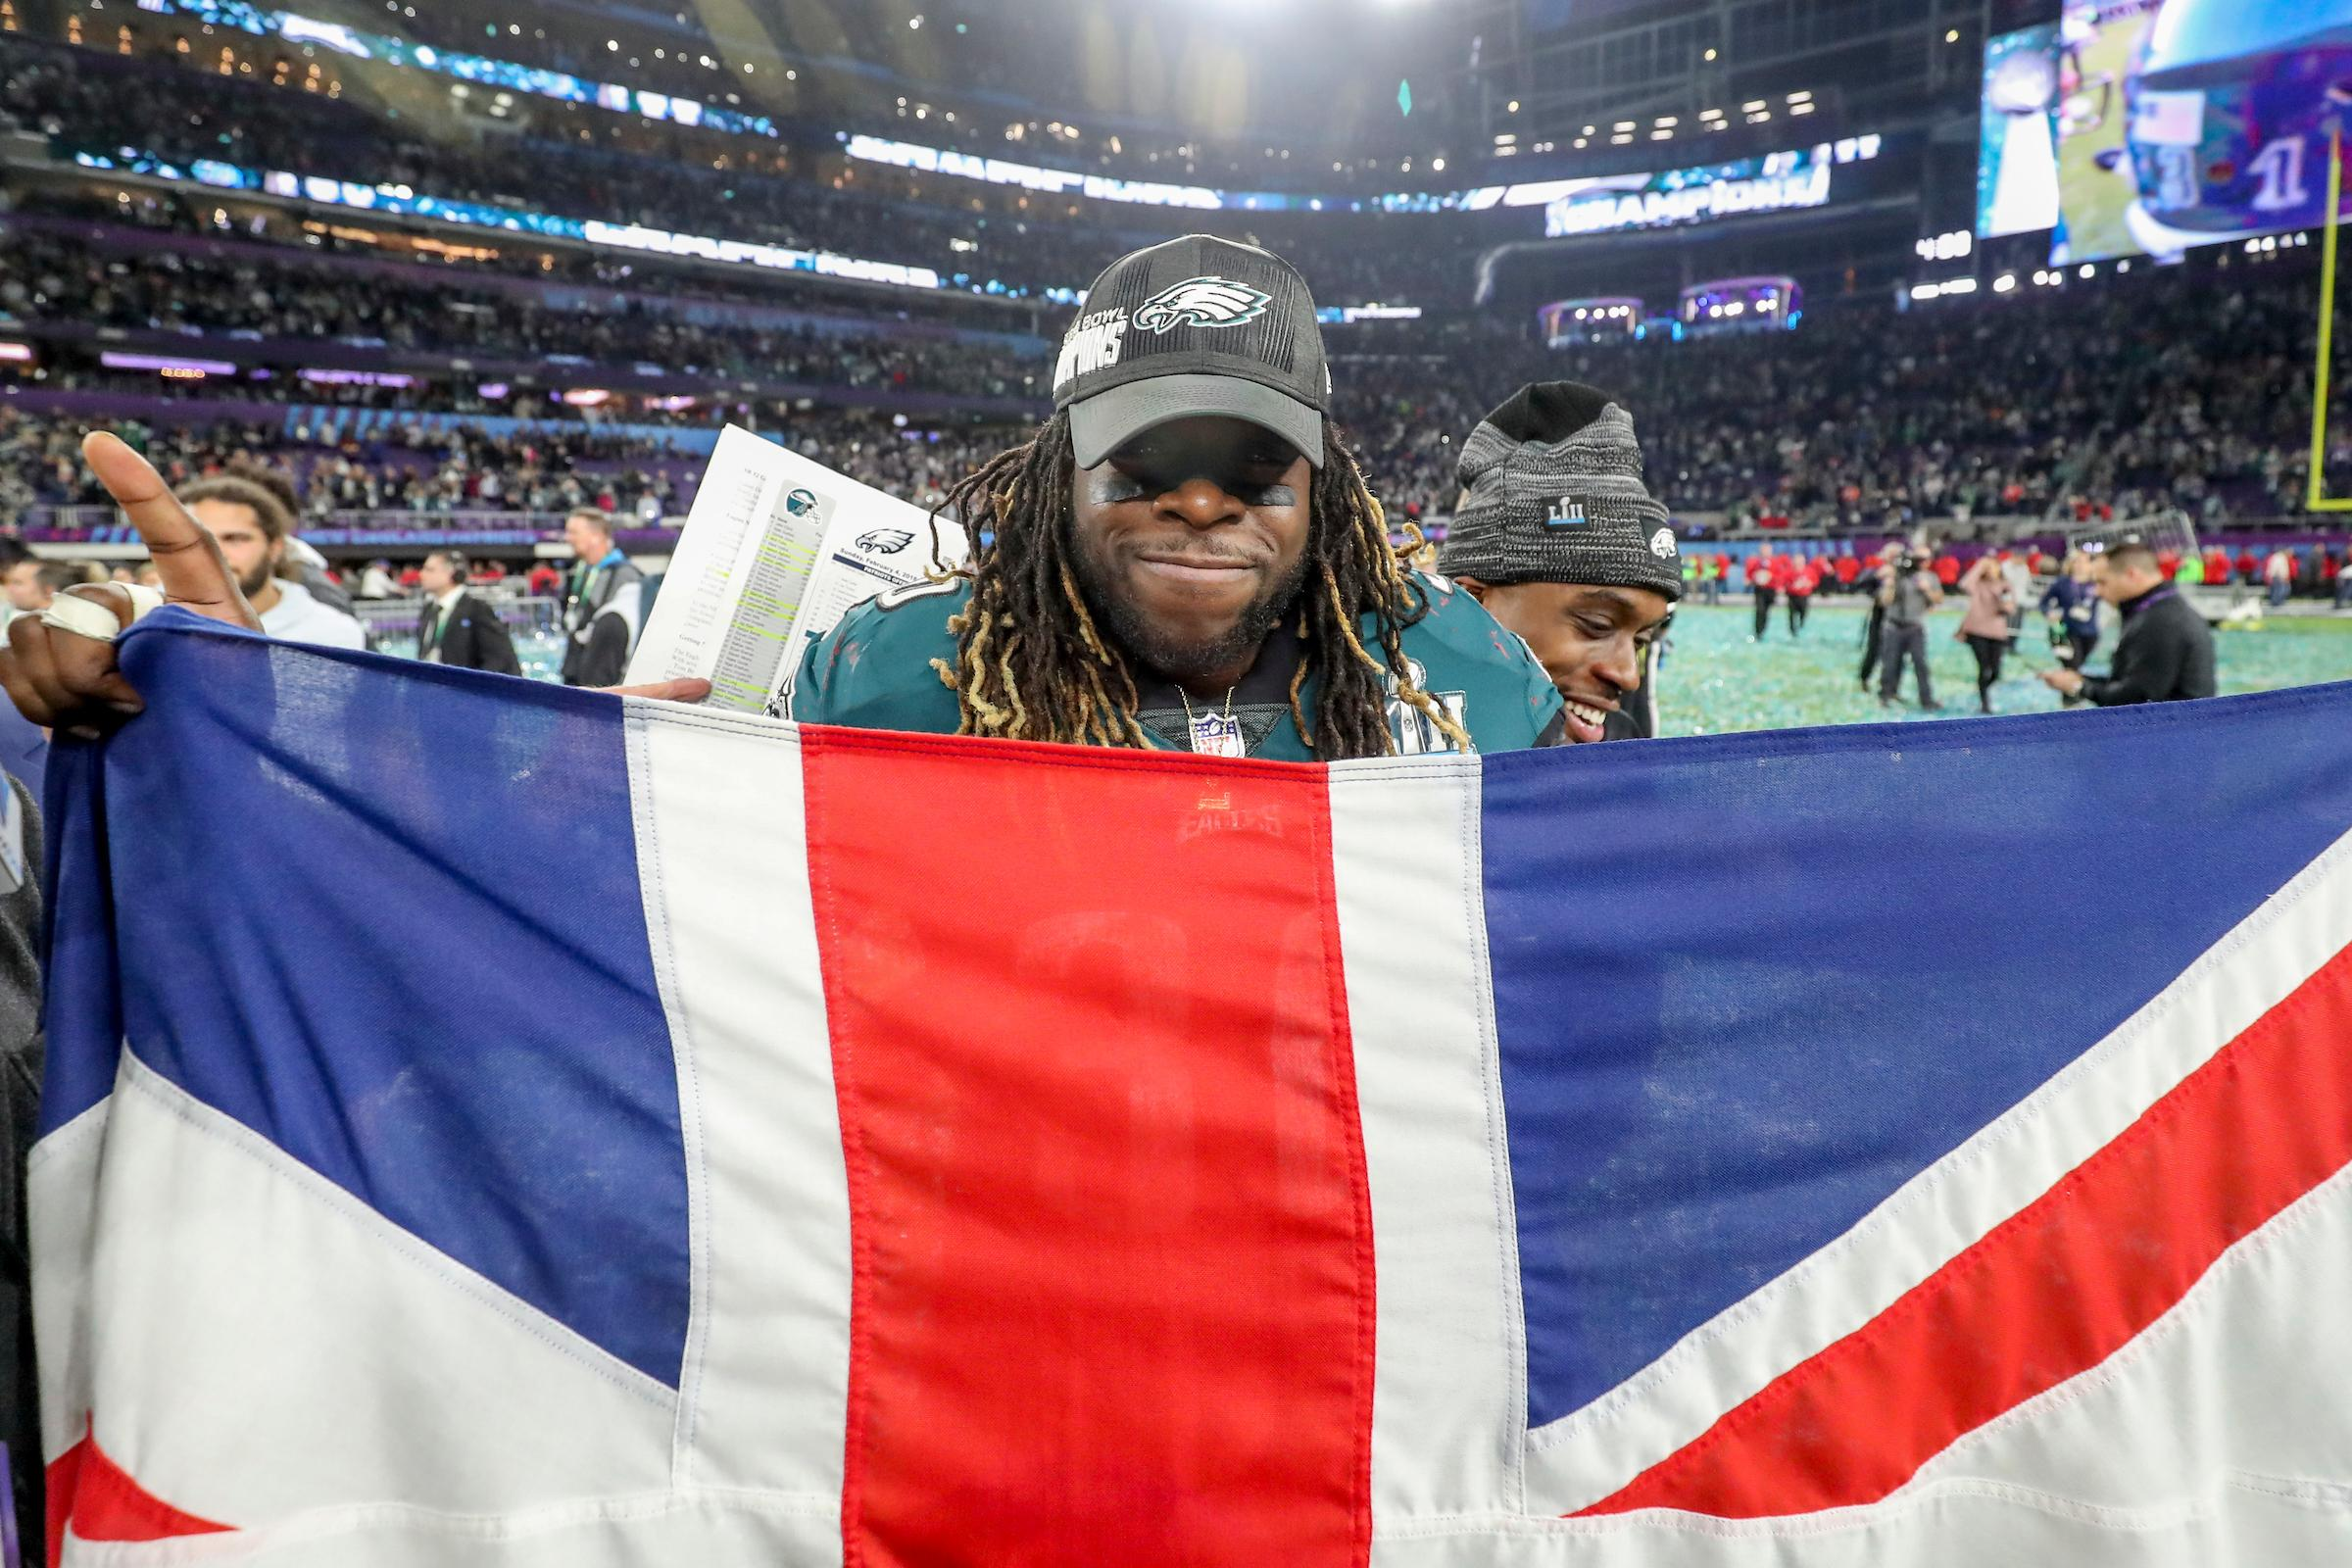 Jay Ajayi holds aloft a British flag after his Super Bowl win